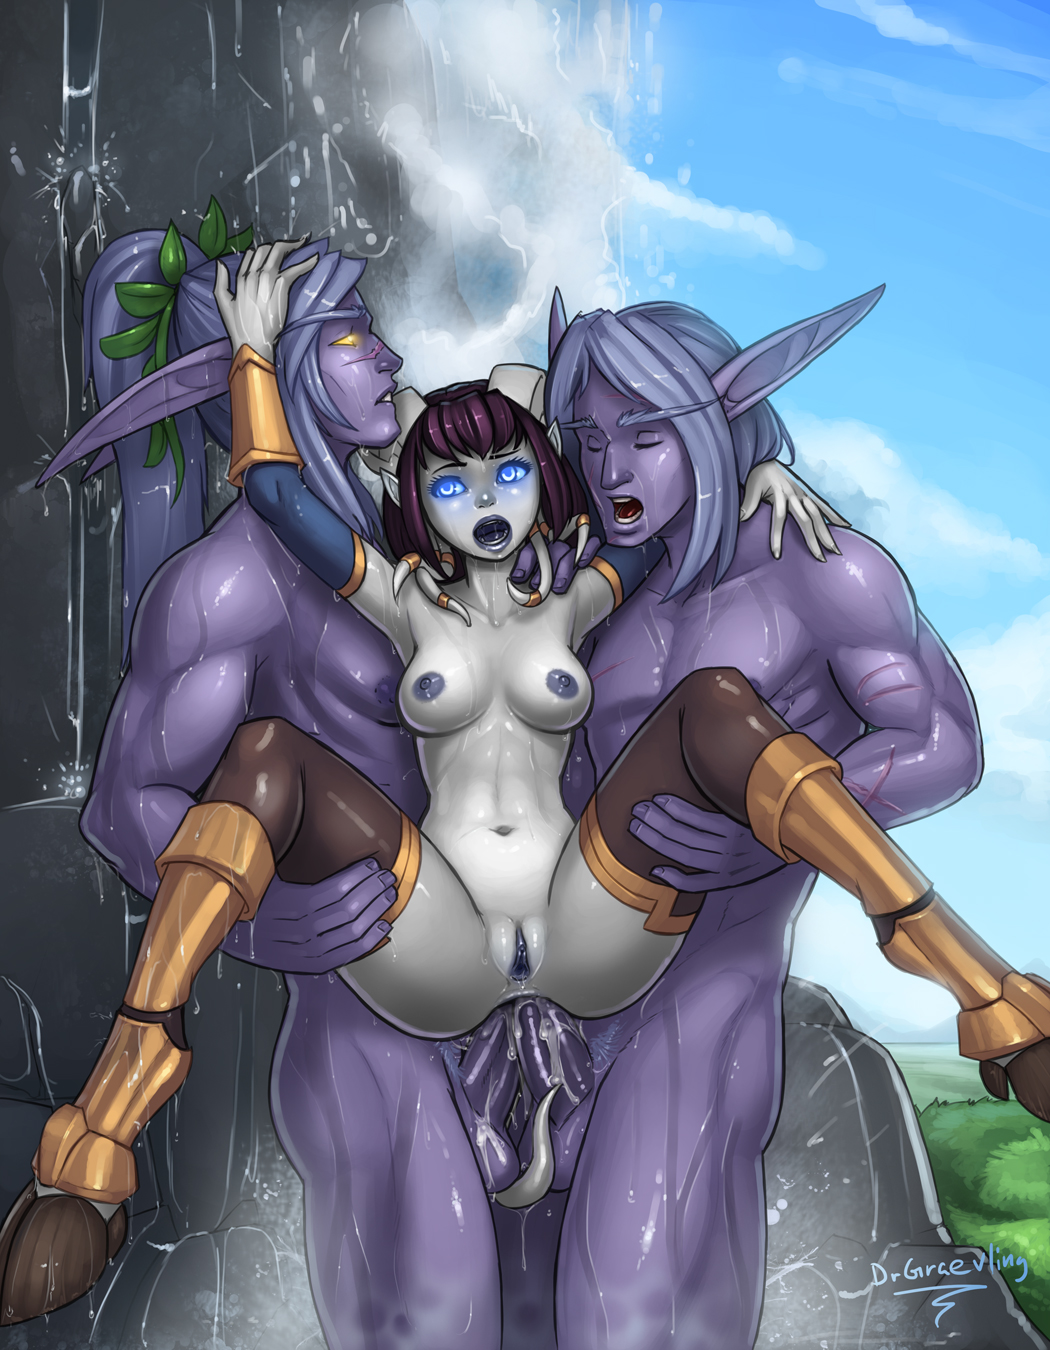 World of warcraft videos de elfas porno  hentia videos